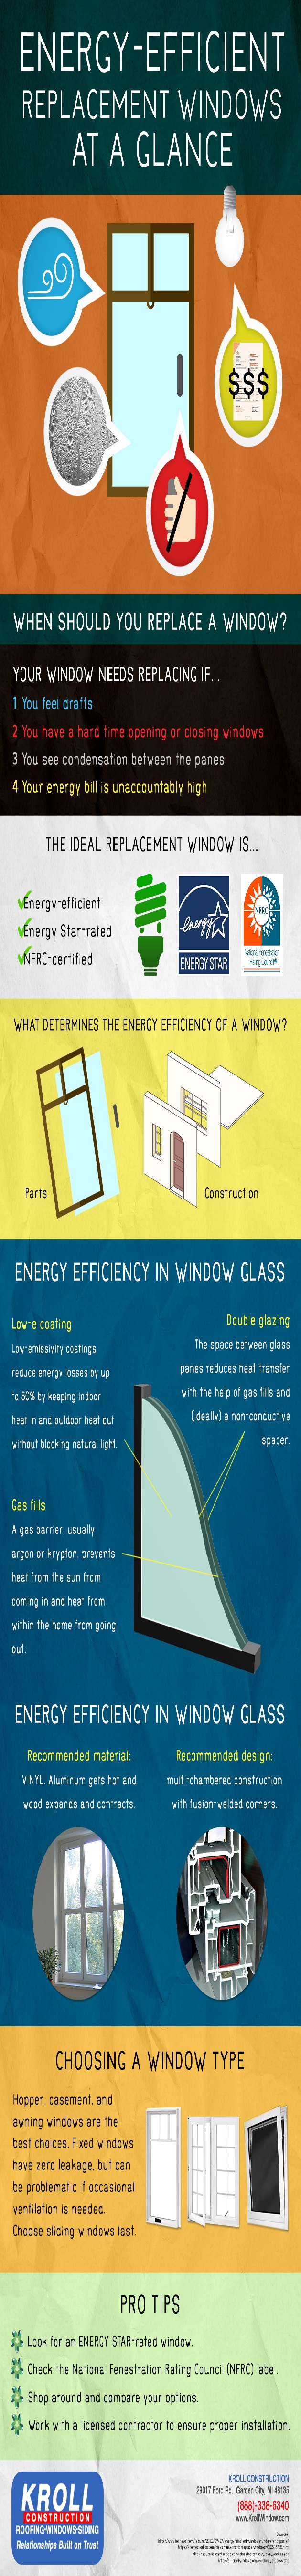 Energy-Efficient Replacement Windows At A Glance